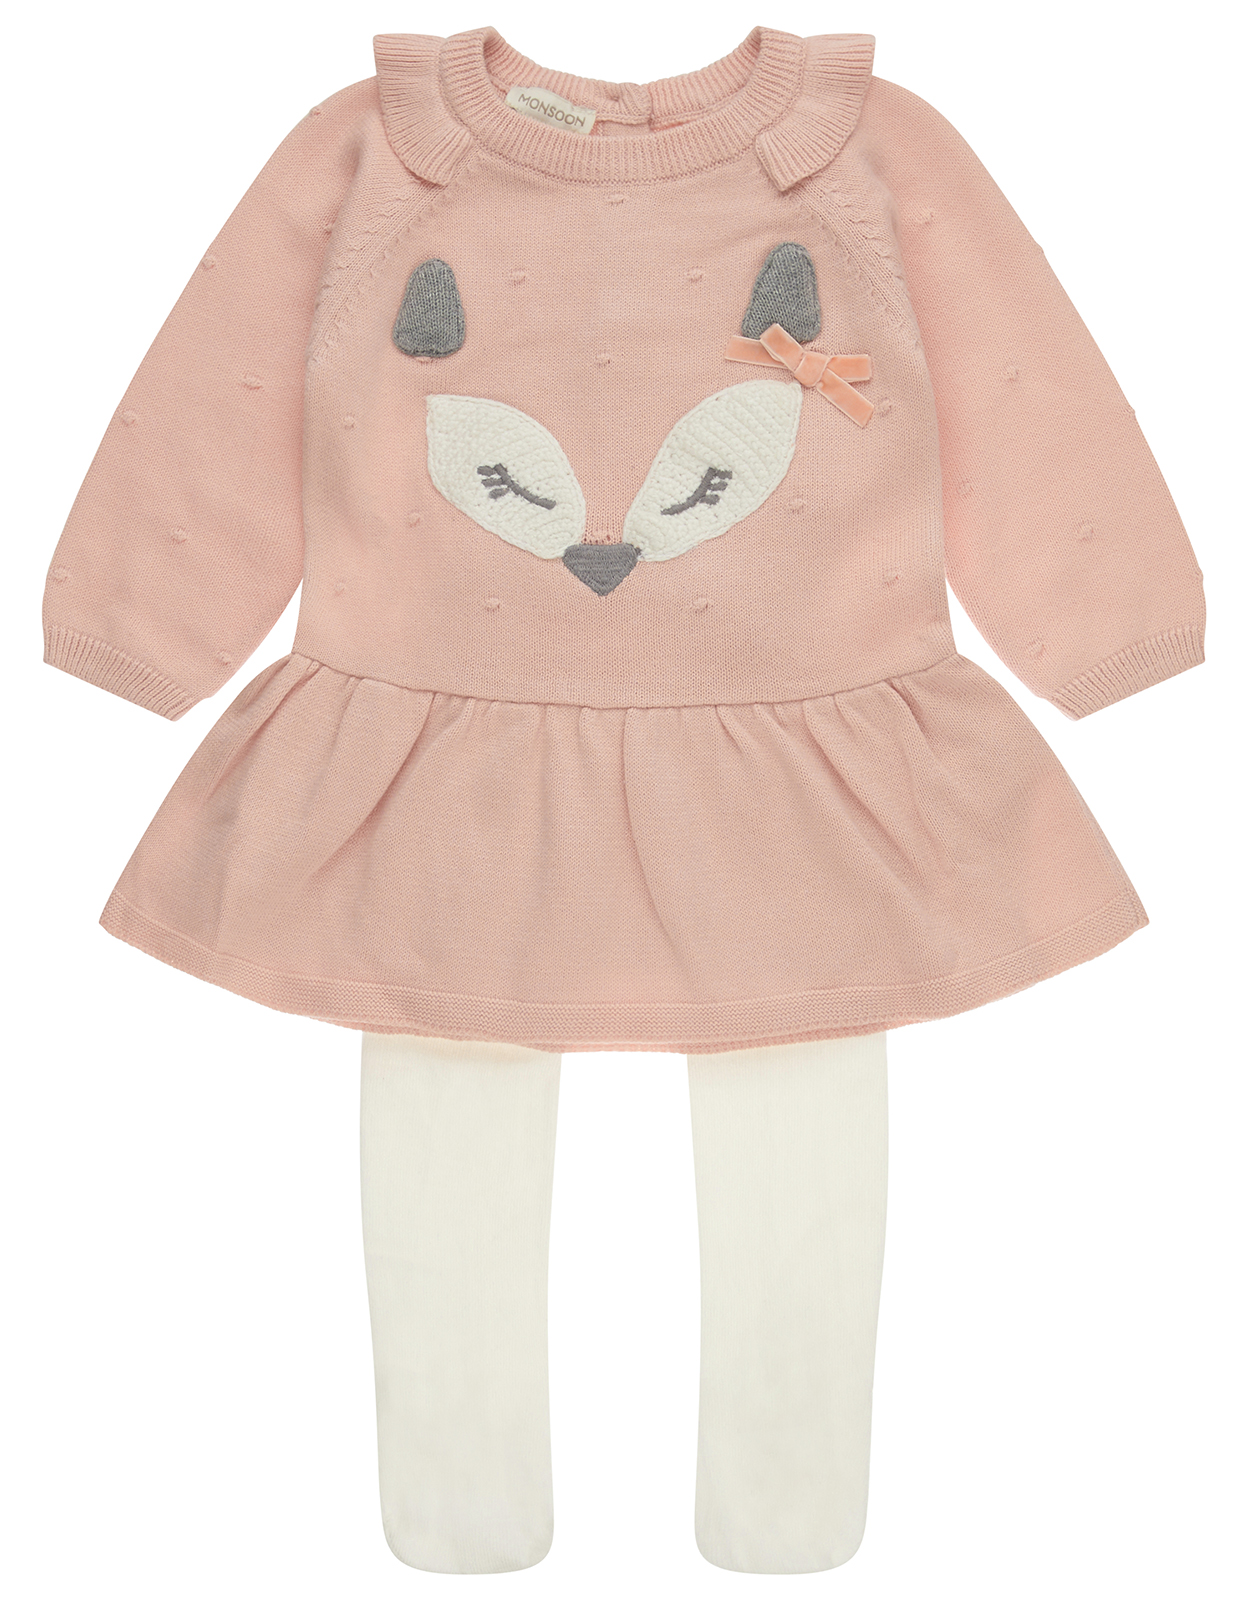 Monsoon Baby Felicity Fox Knit Dress & Tights Set